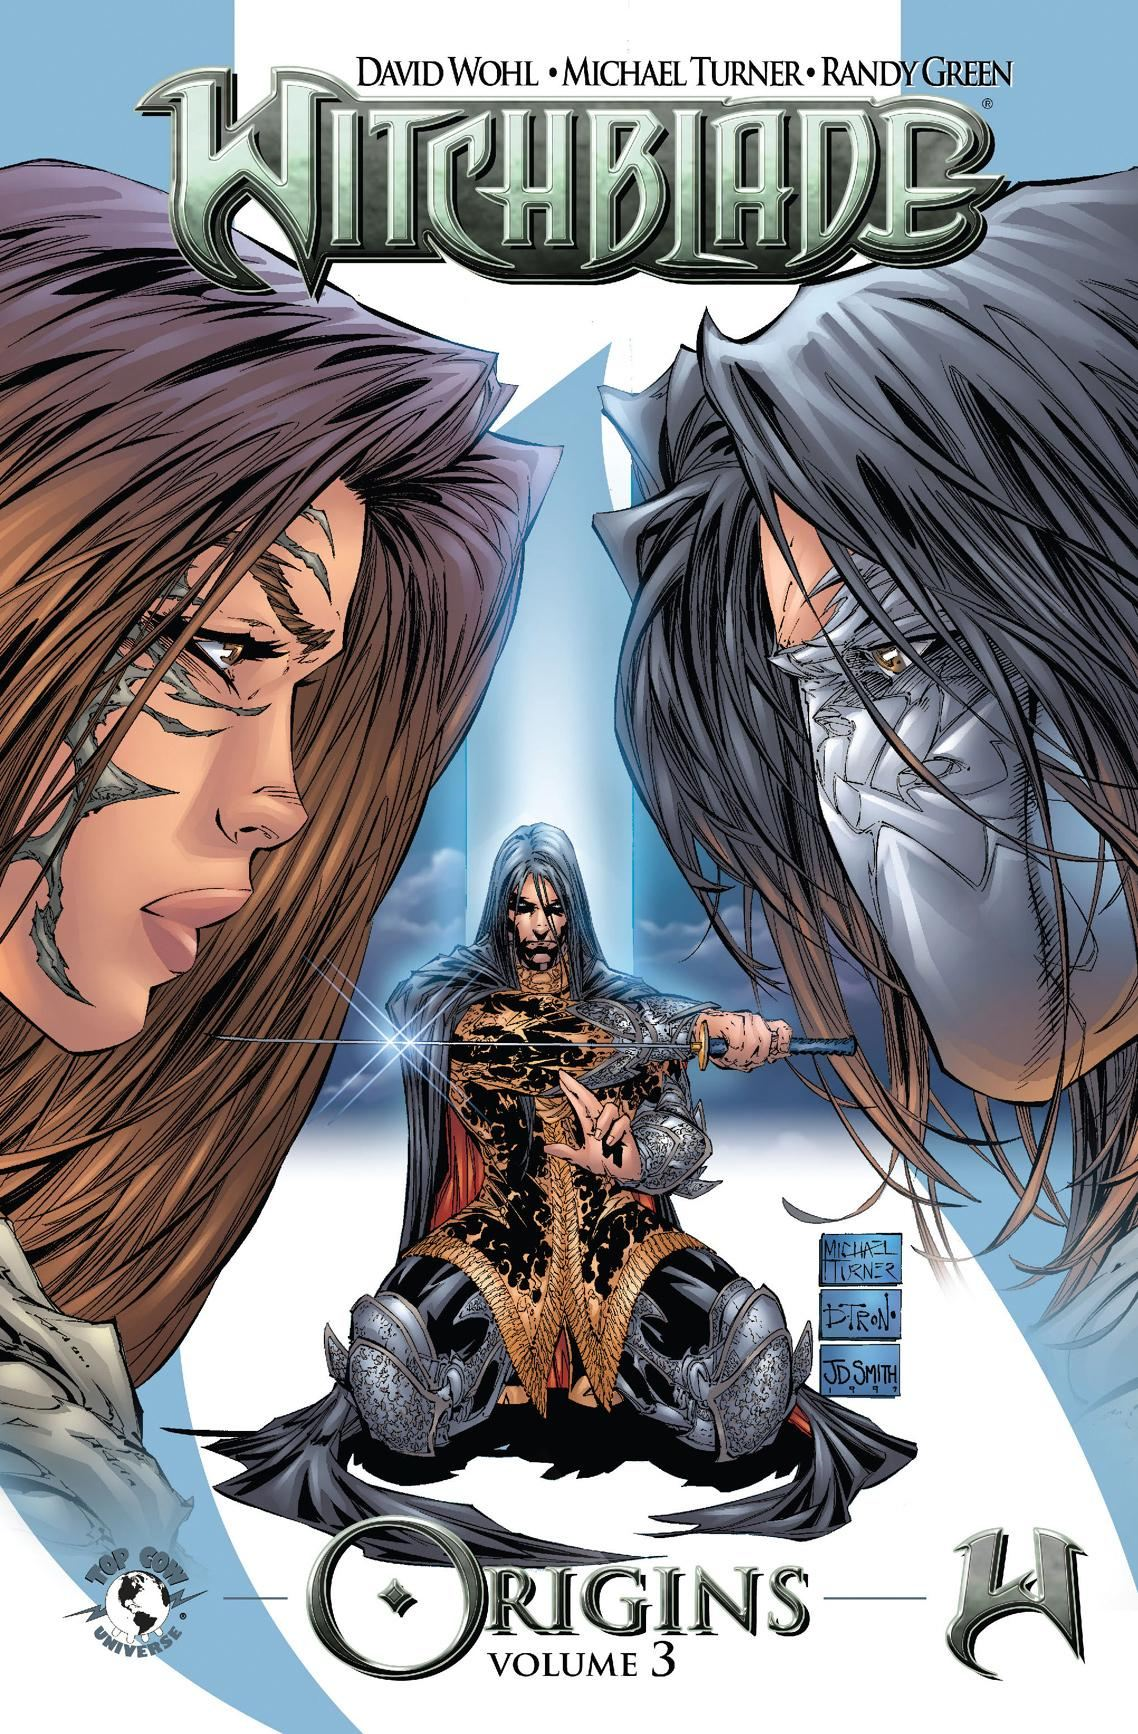 Witchblade Origins Volume 3